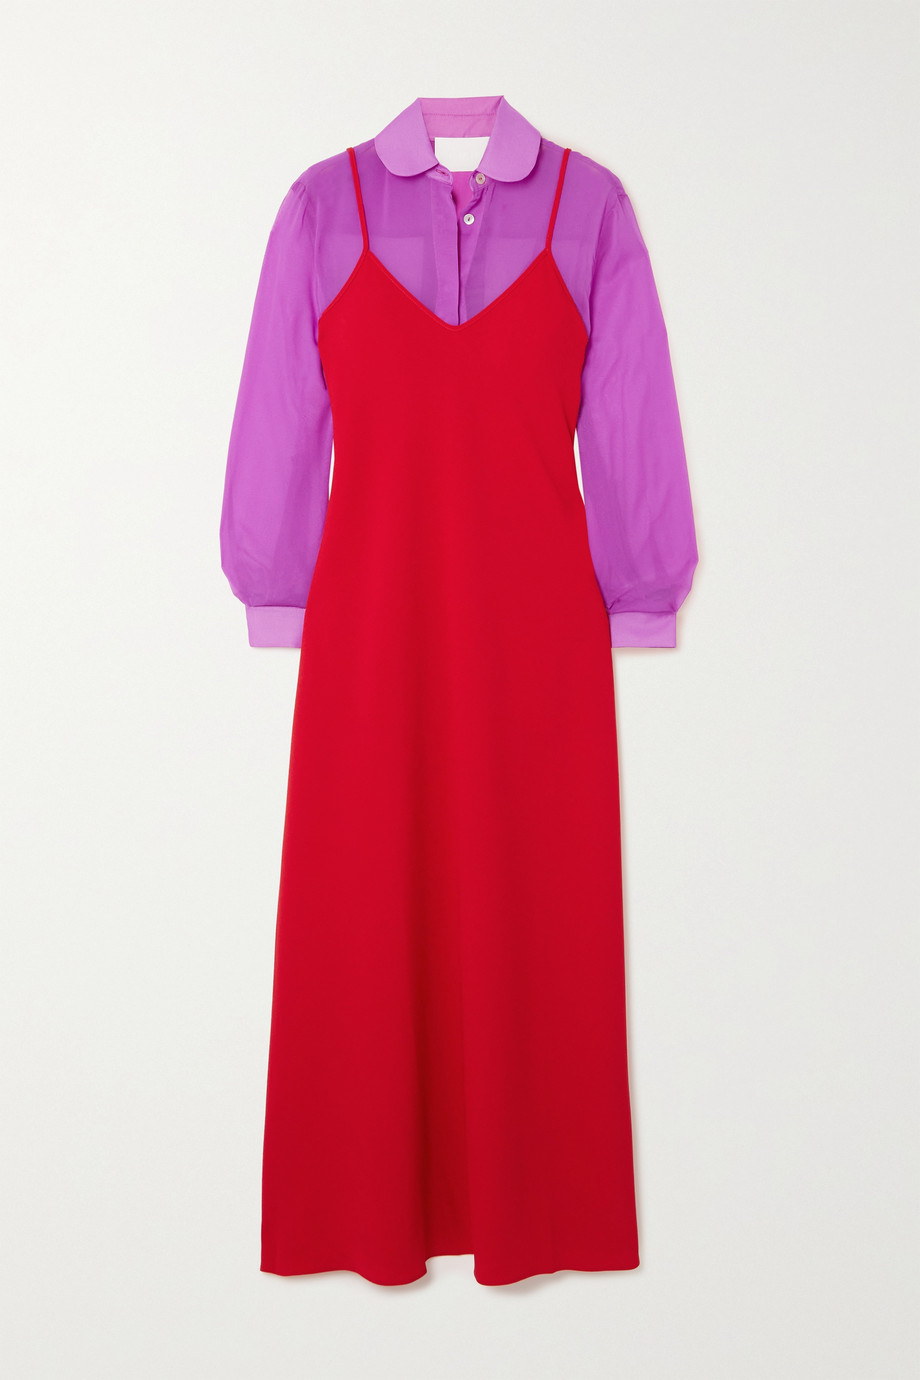 Racil Alaya crepe de chine and chiffon dress and shirt set